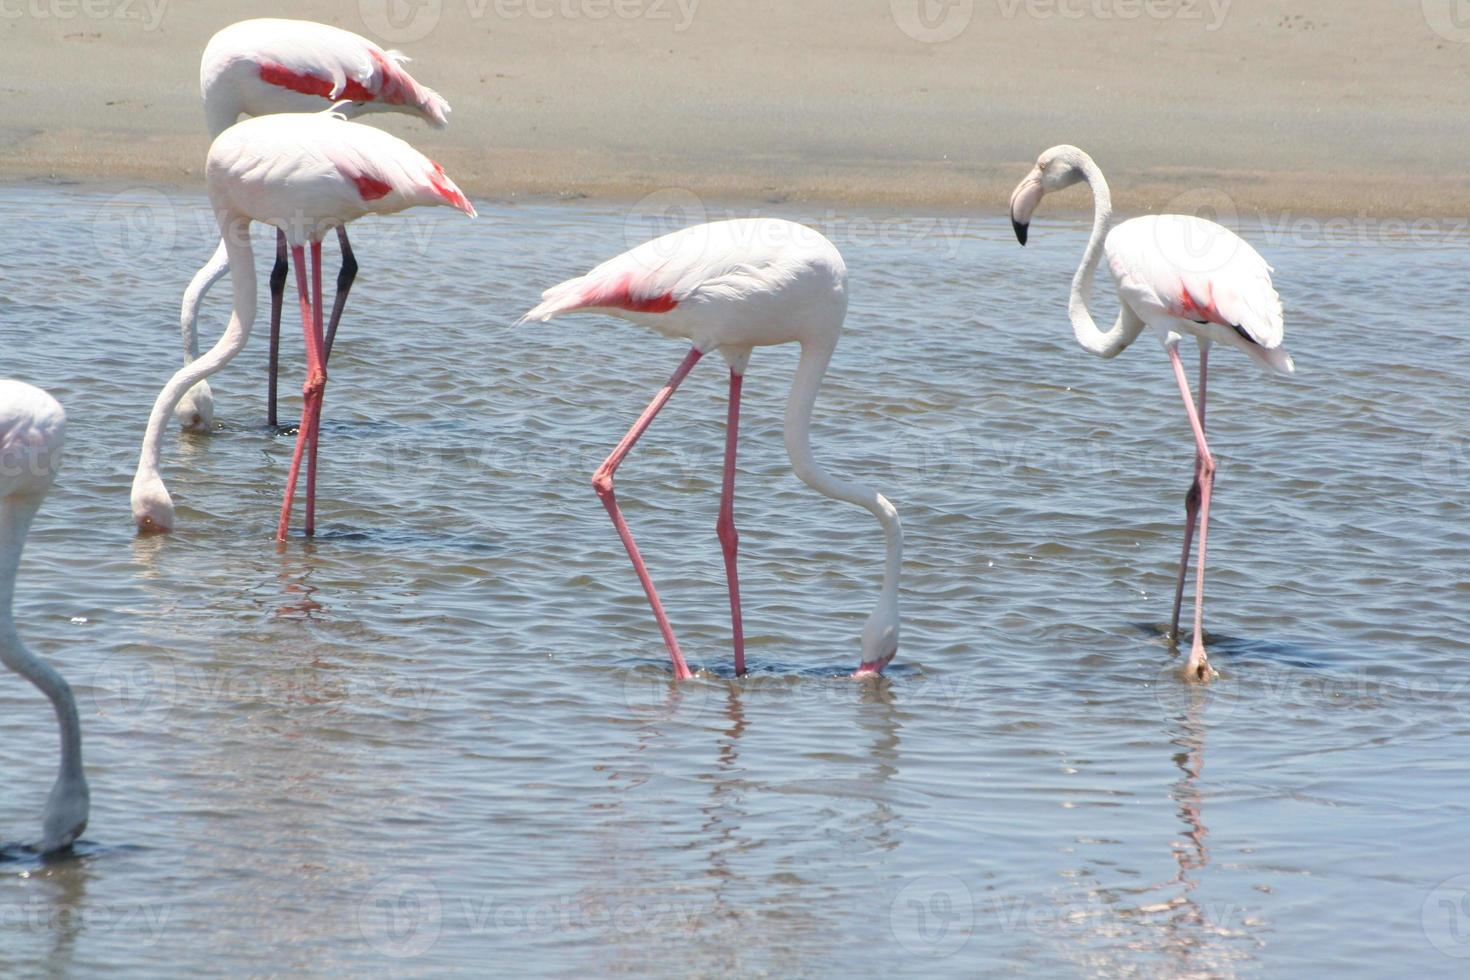 Flamingos in the Lagoon of Walvis Bay, Namibia, Africa photo